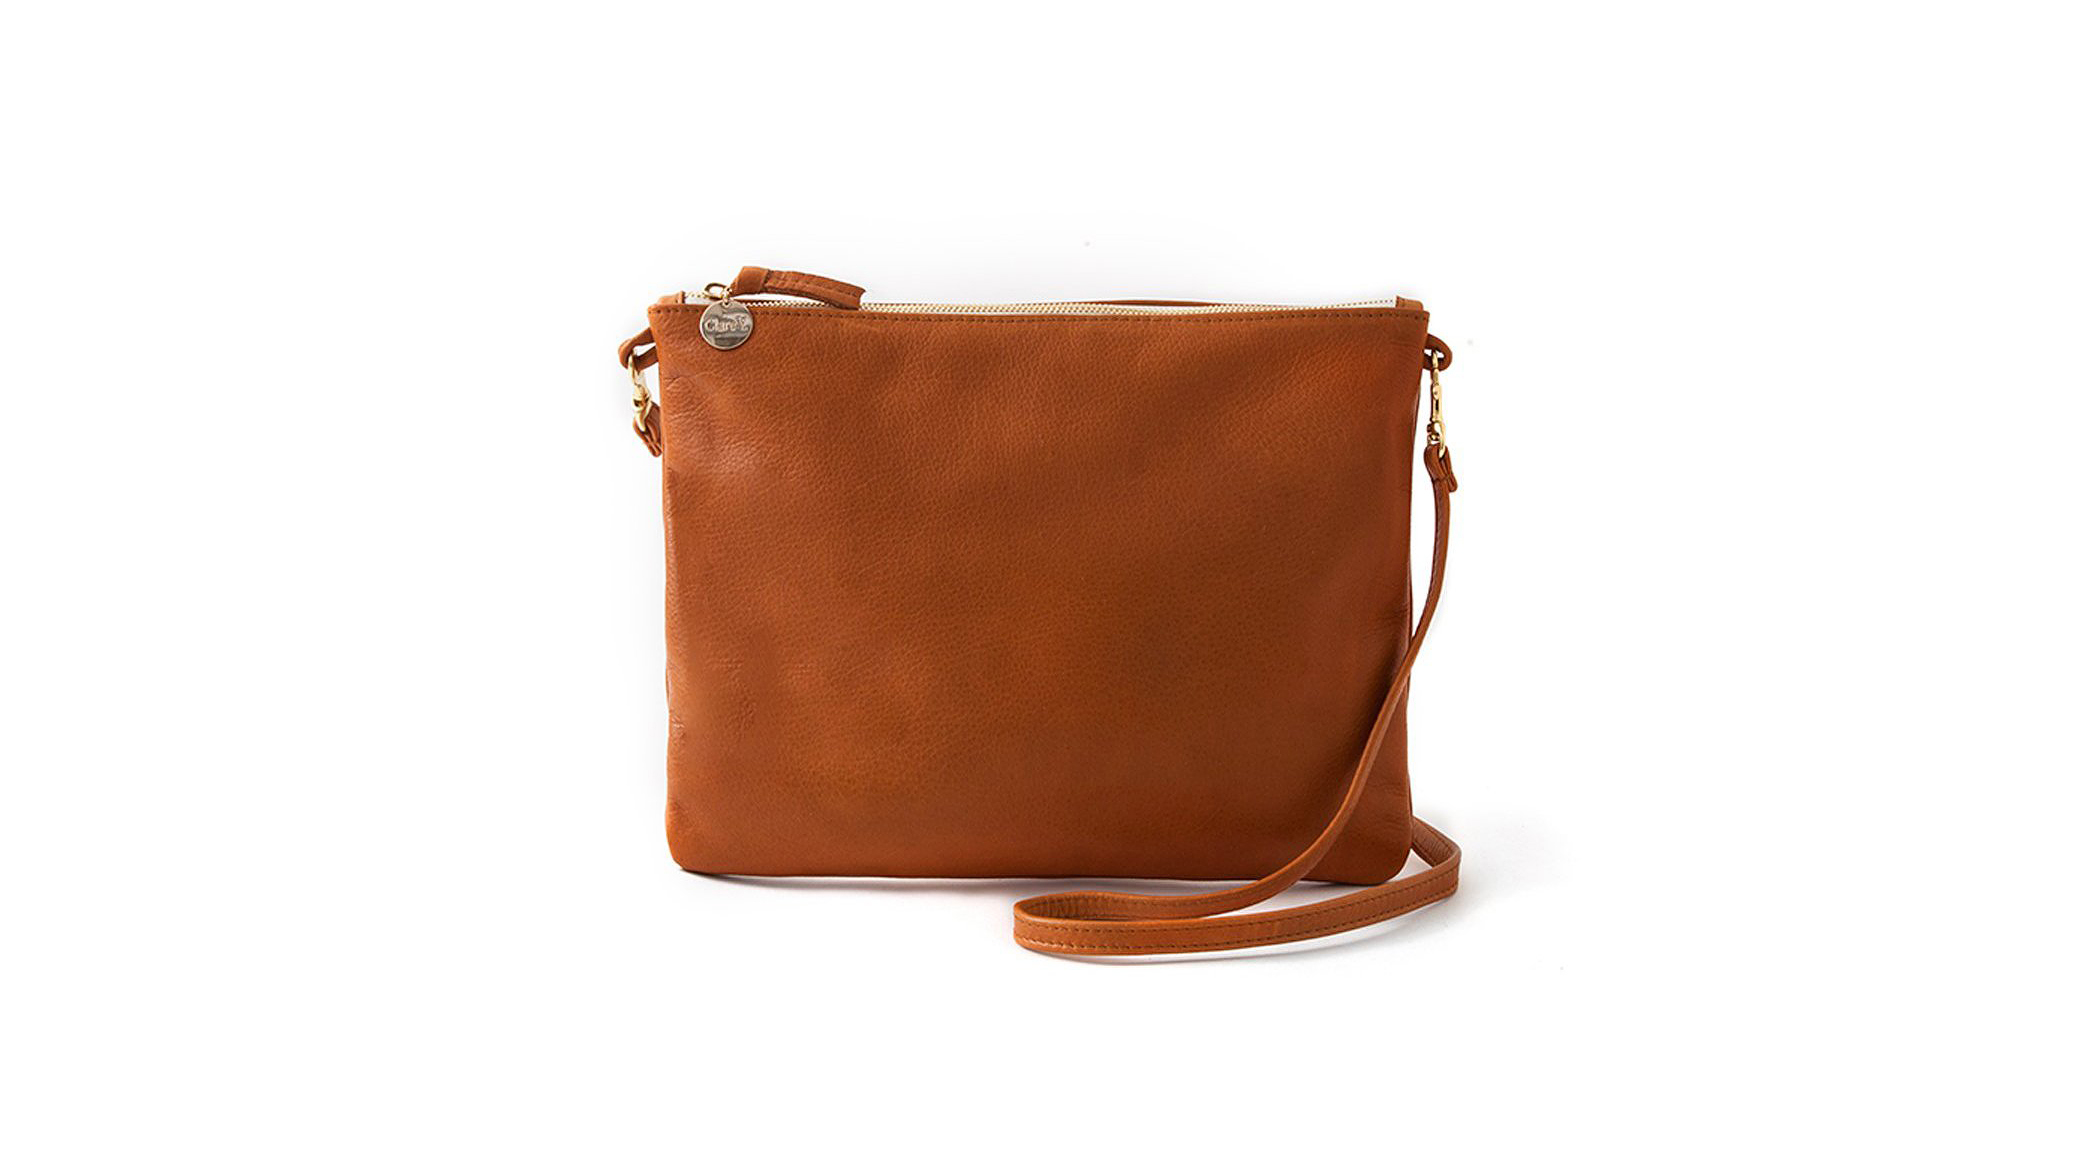 darcy honeymoon essentials clare v crossbody bag